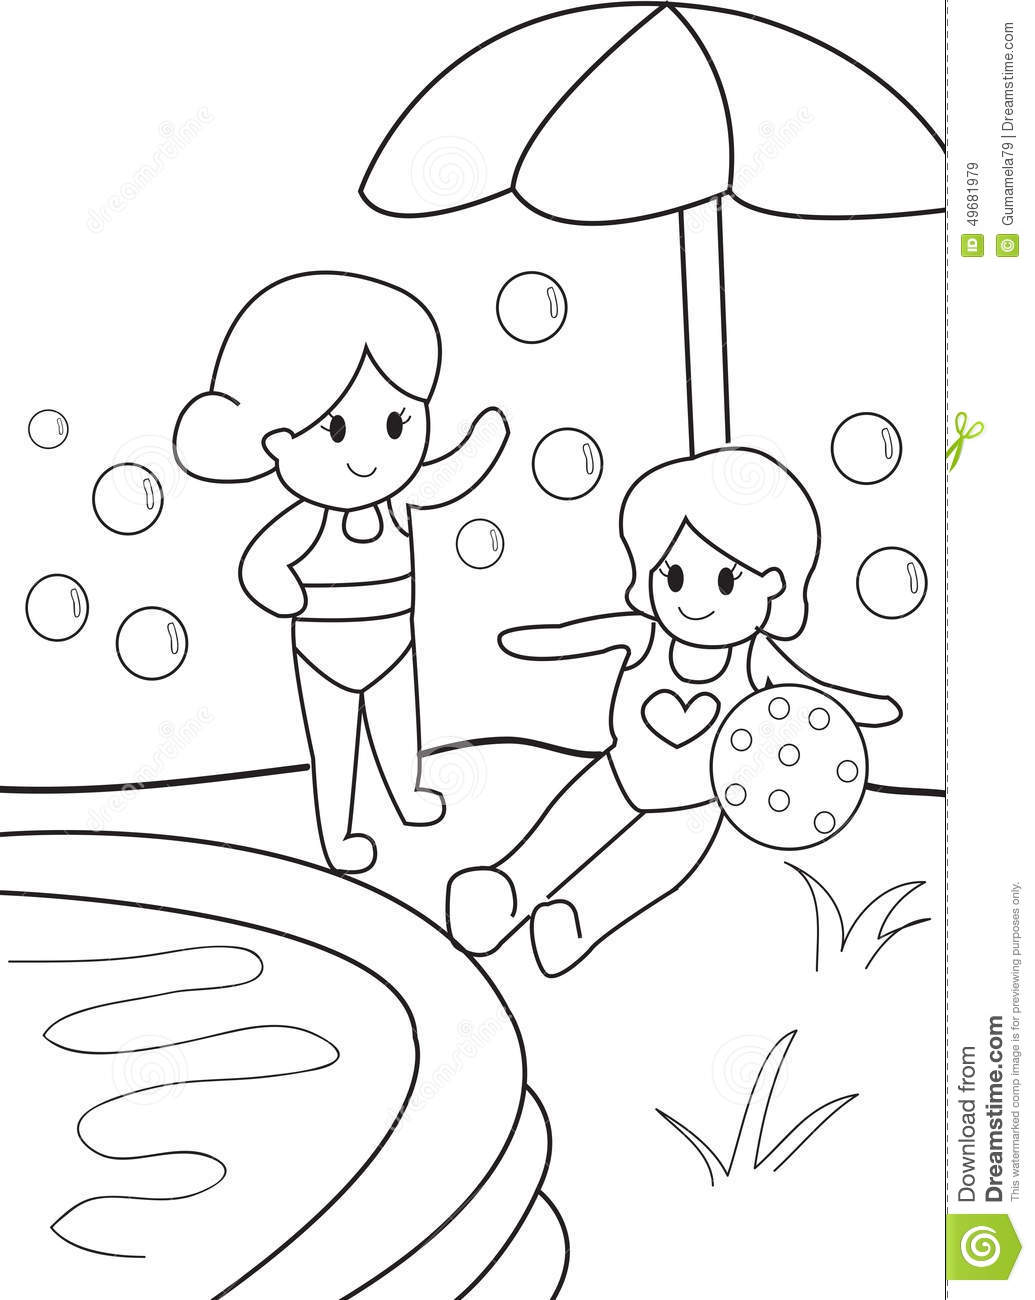 coloring pages swimming pool - photo#34